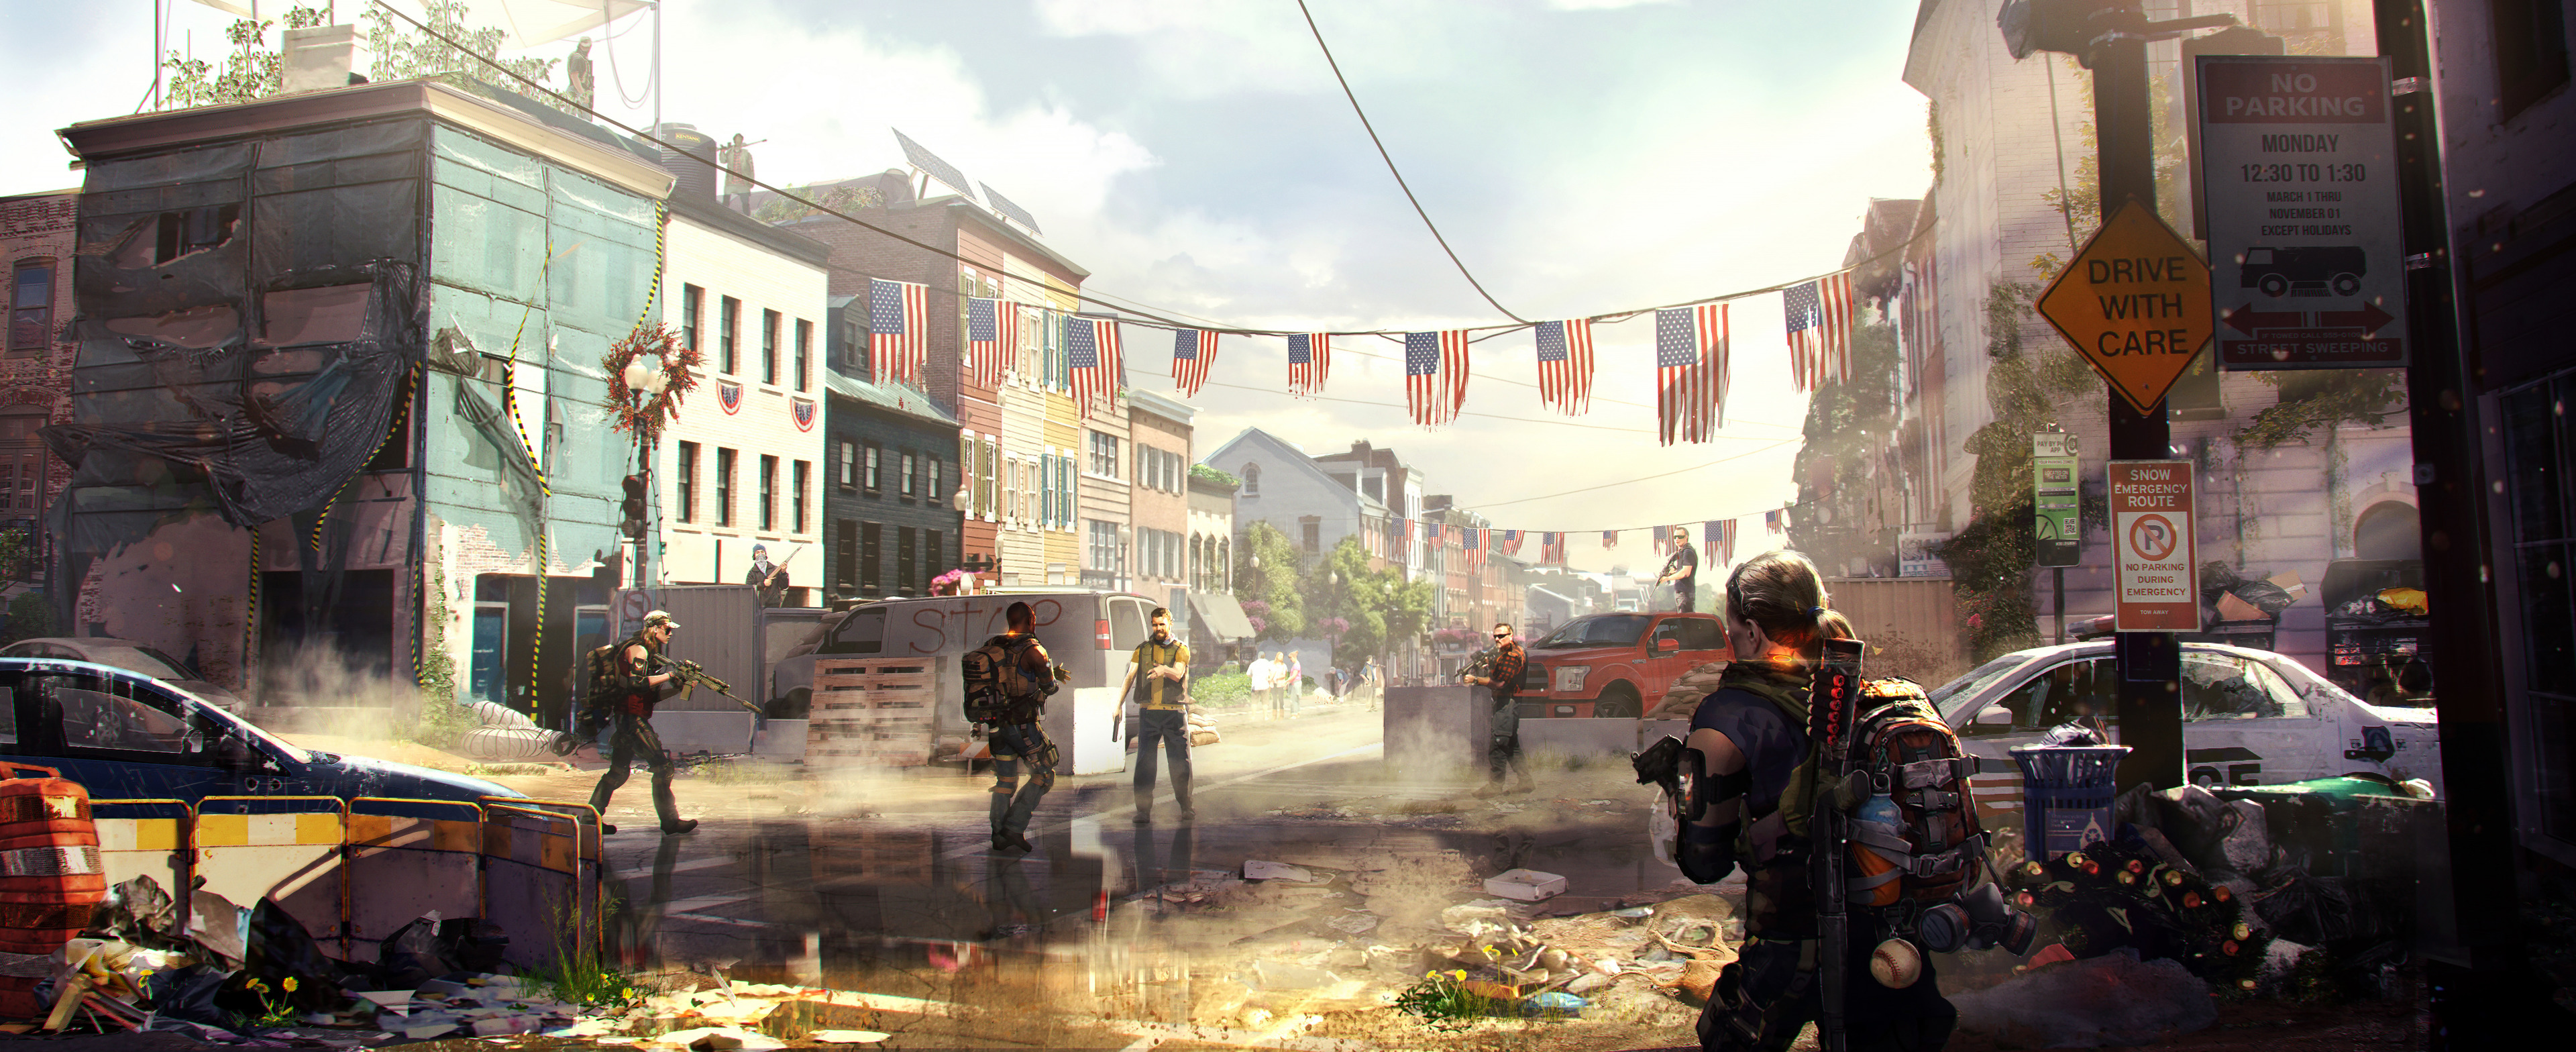 Tom Clancys The Division 2 Hd Games 4k Wallpapers Images